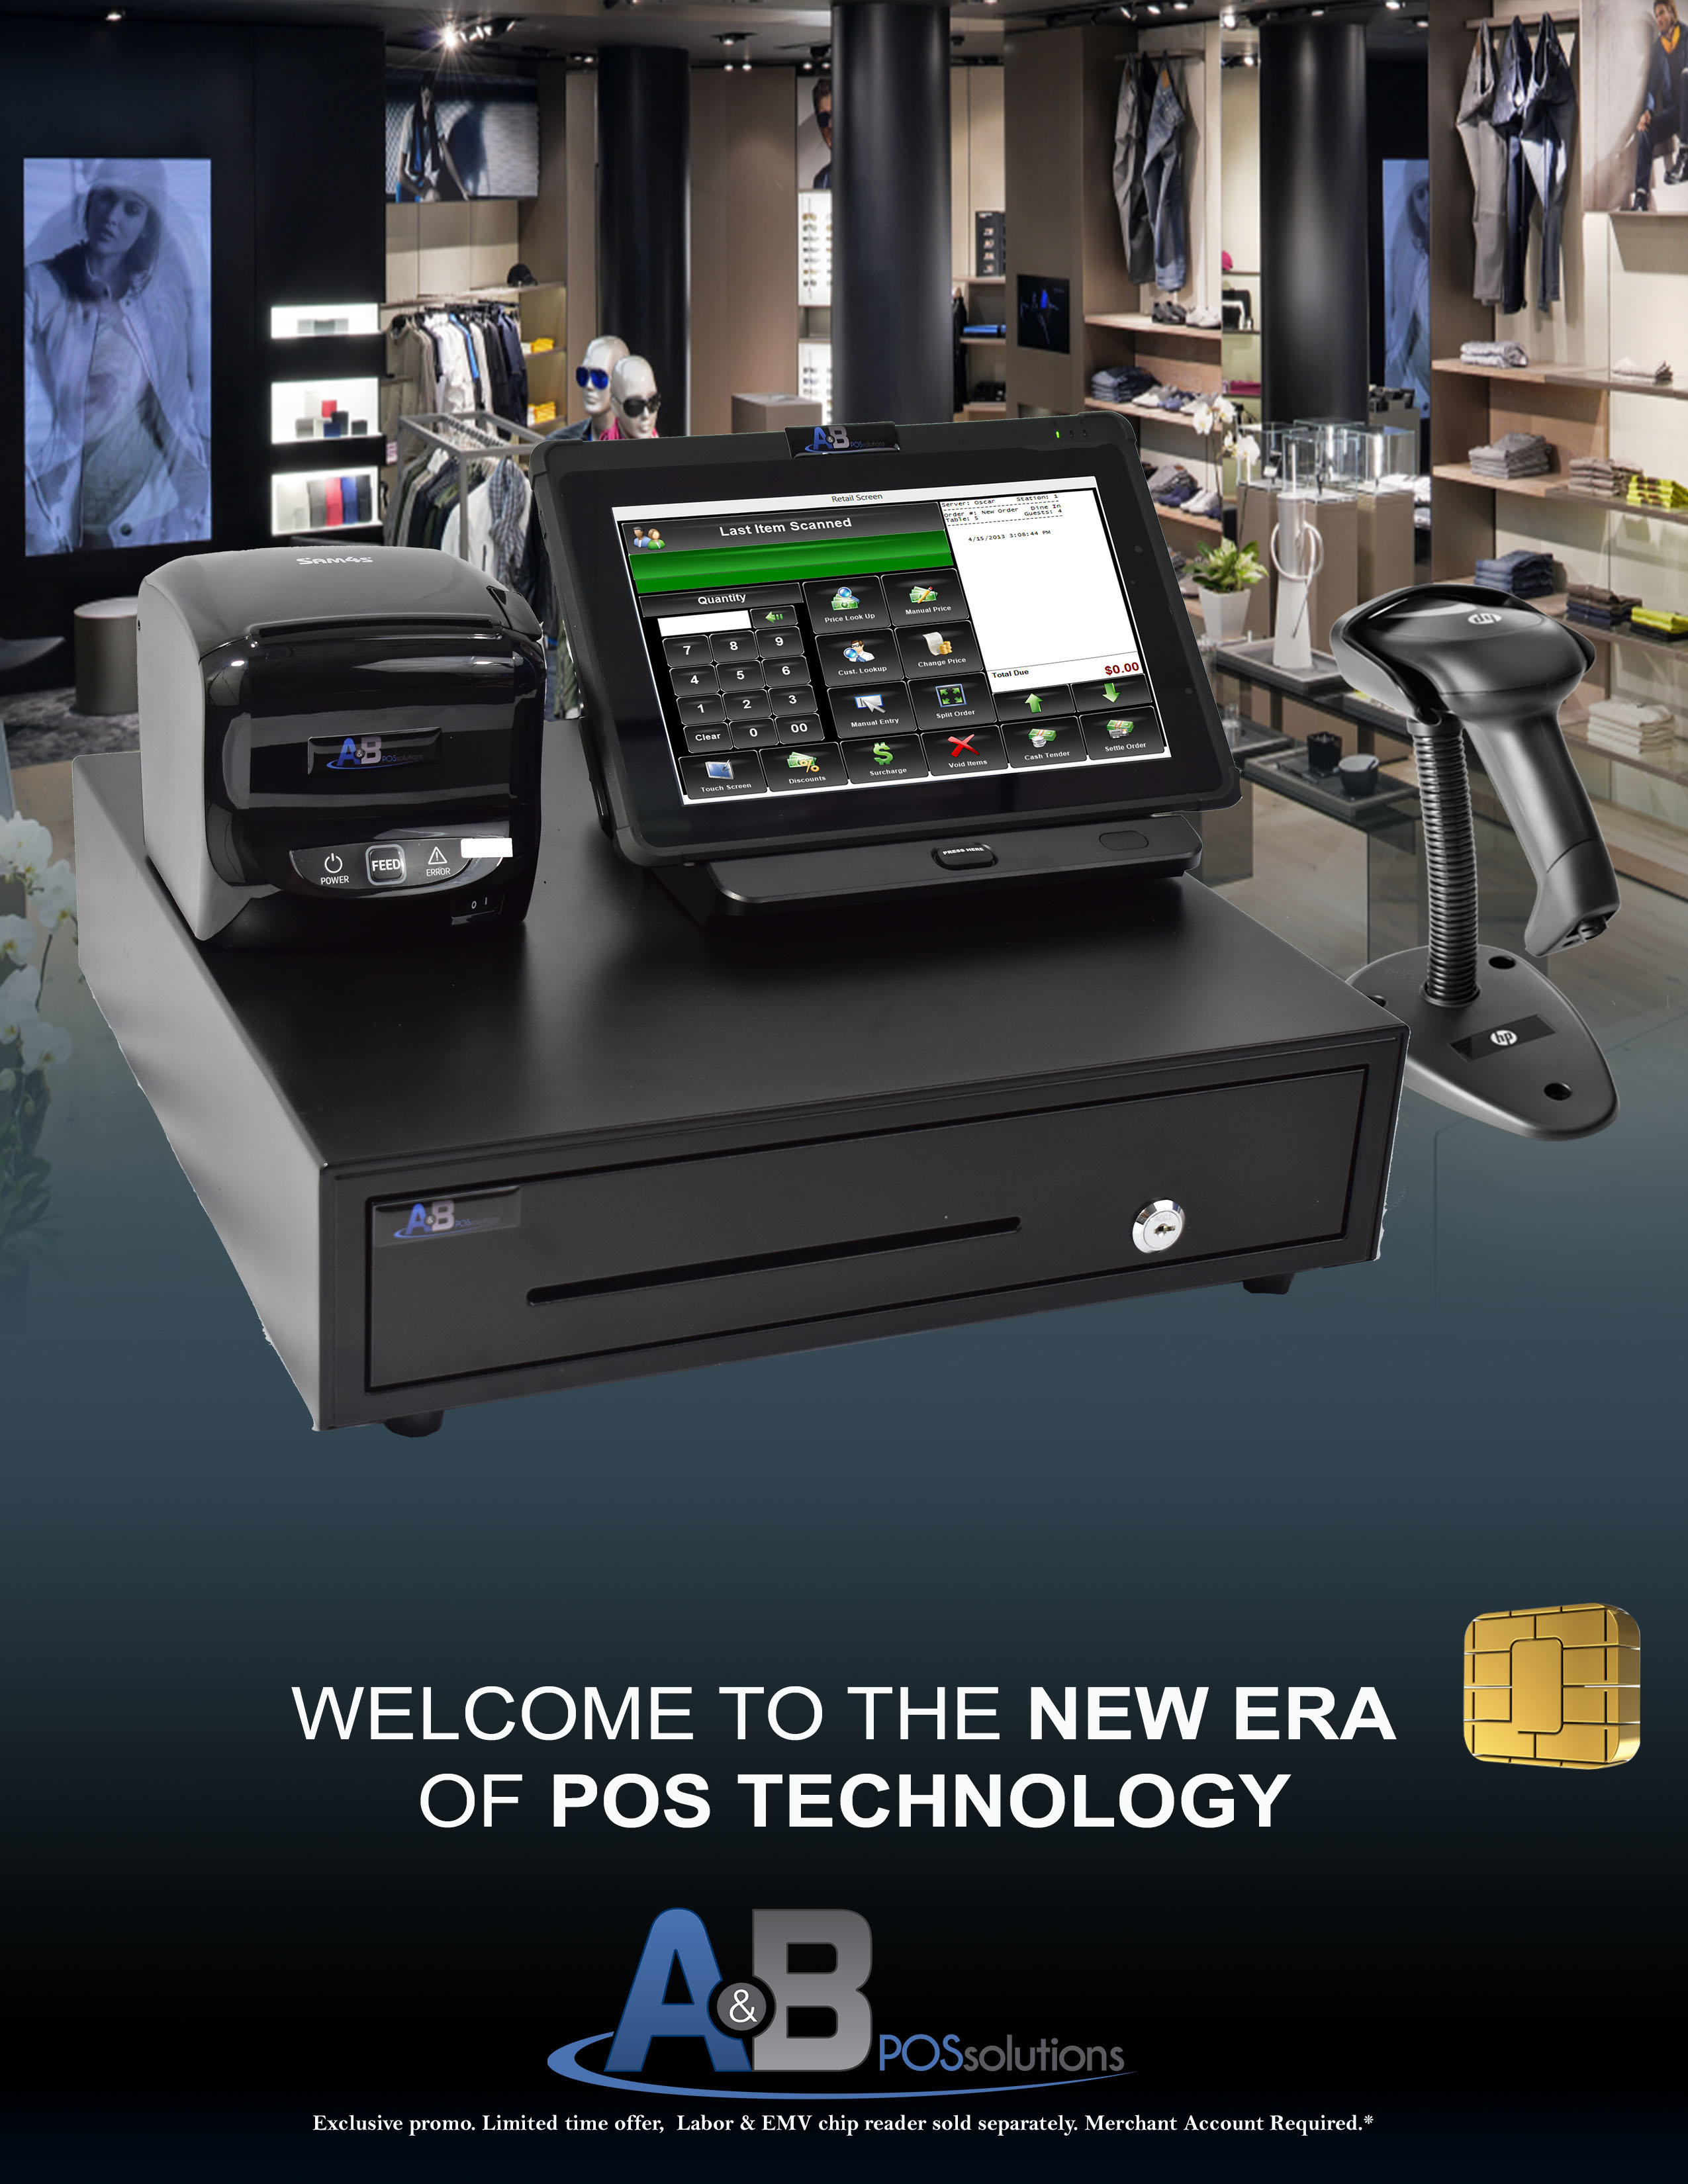 AB POS Solutions image 1